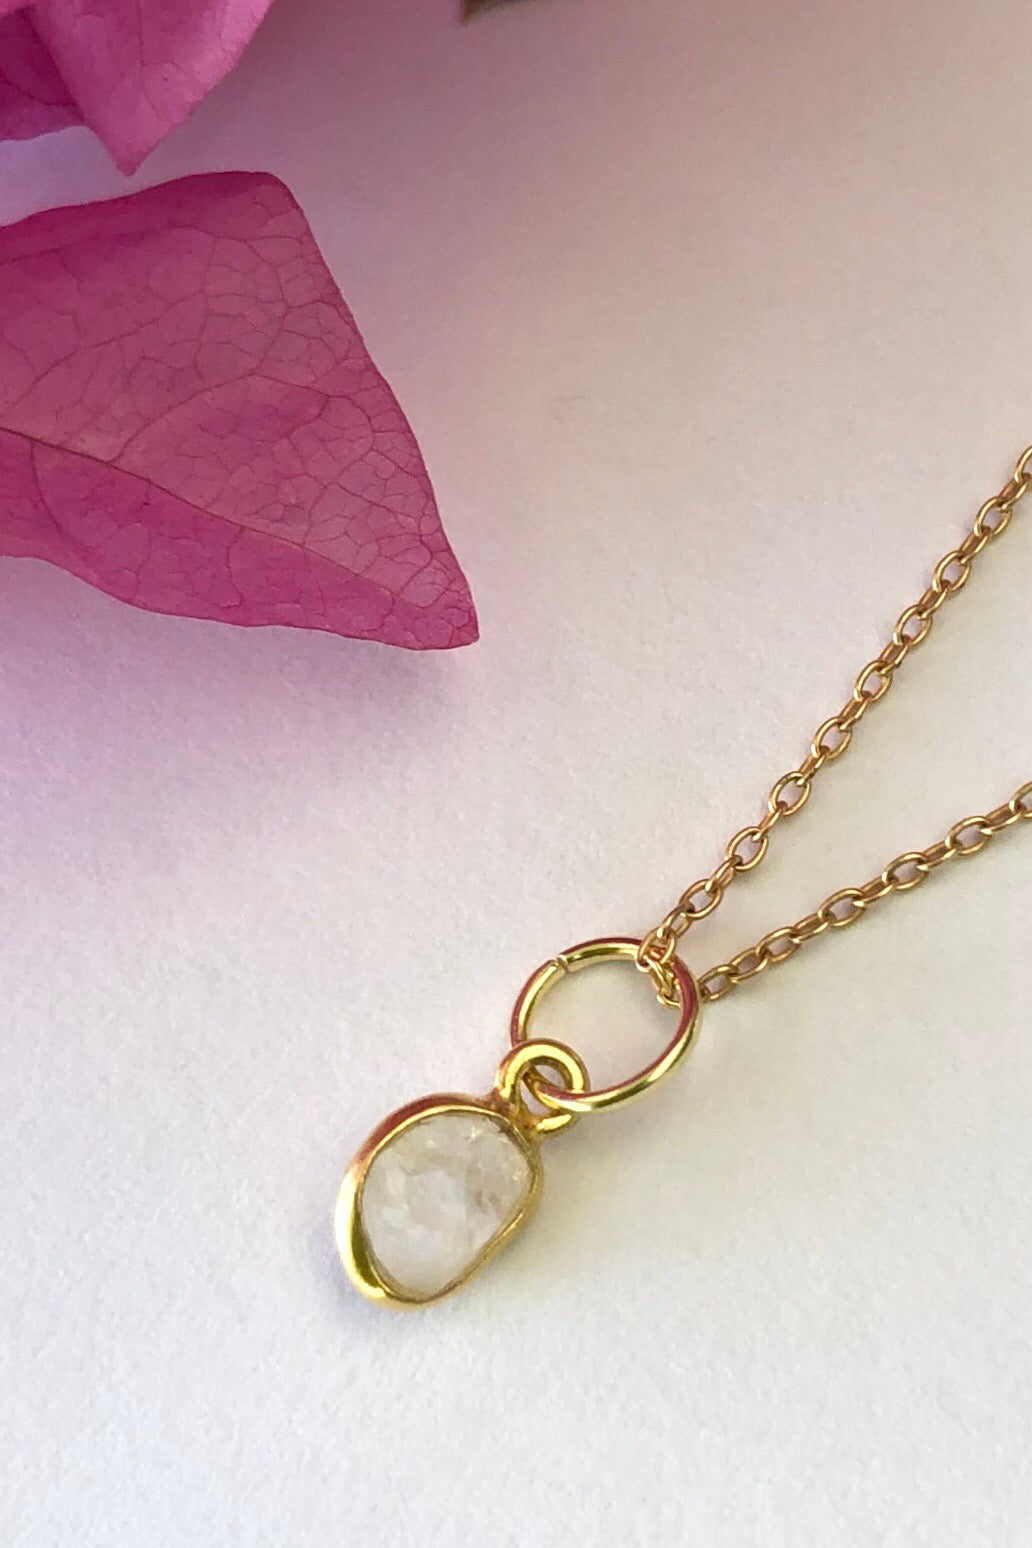 Luna Moonstone Pendant, dainty crystal pendant on gold chain